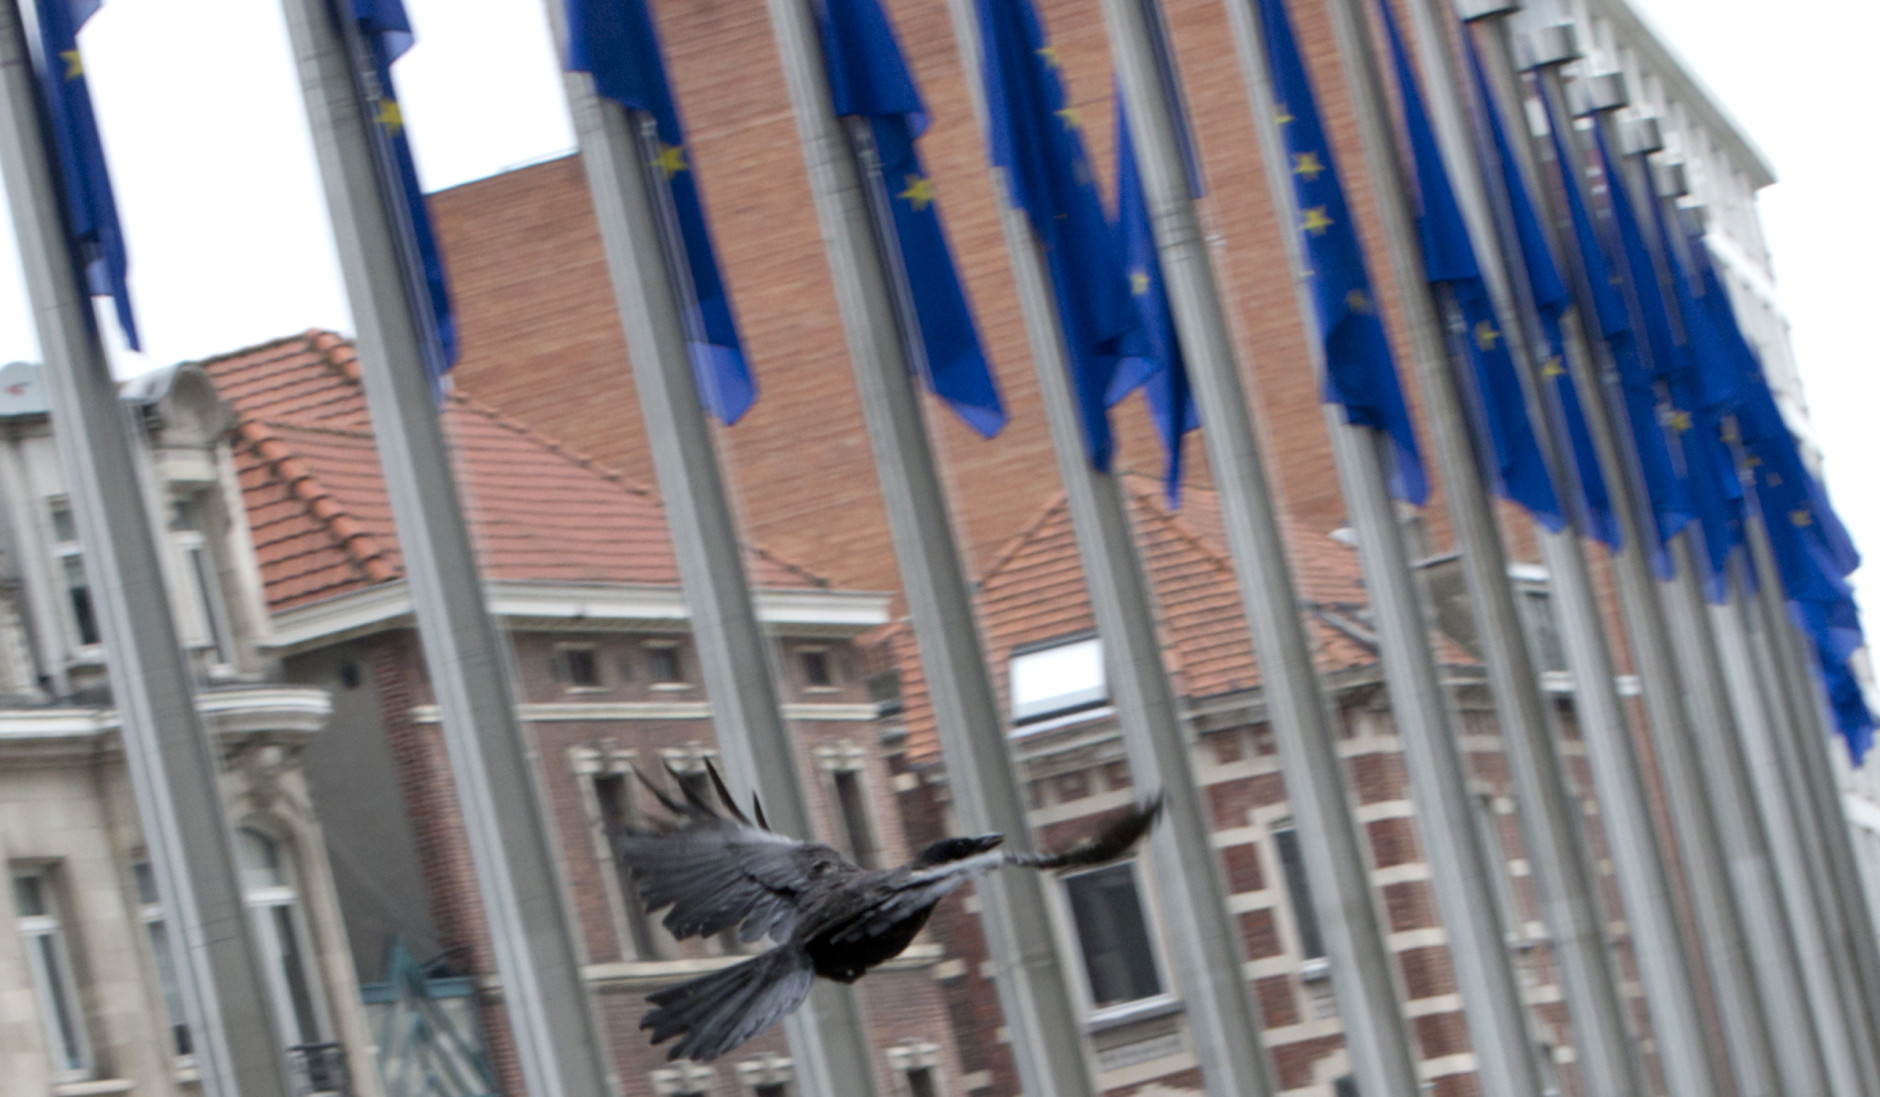 A crow flies by EU flags in front of EU headquarters in Brussels on Friday, June 24, 2016. Top European Union officials were hunkering down in Brussels Friday to try to work out what to do next after the shock decision by British voters to leave the 28-nation bloc. (AP Photo/Virginia Mayo)